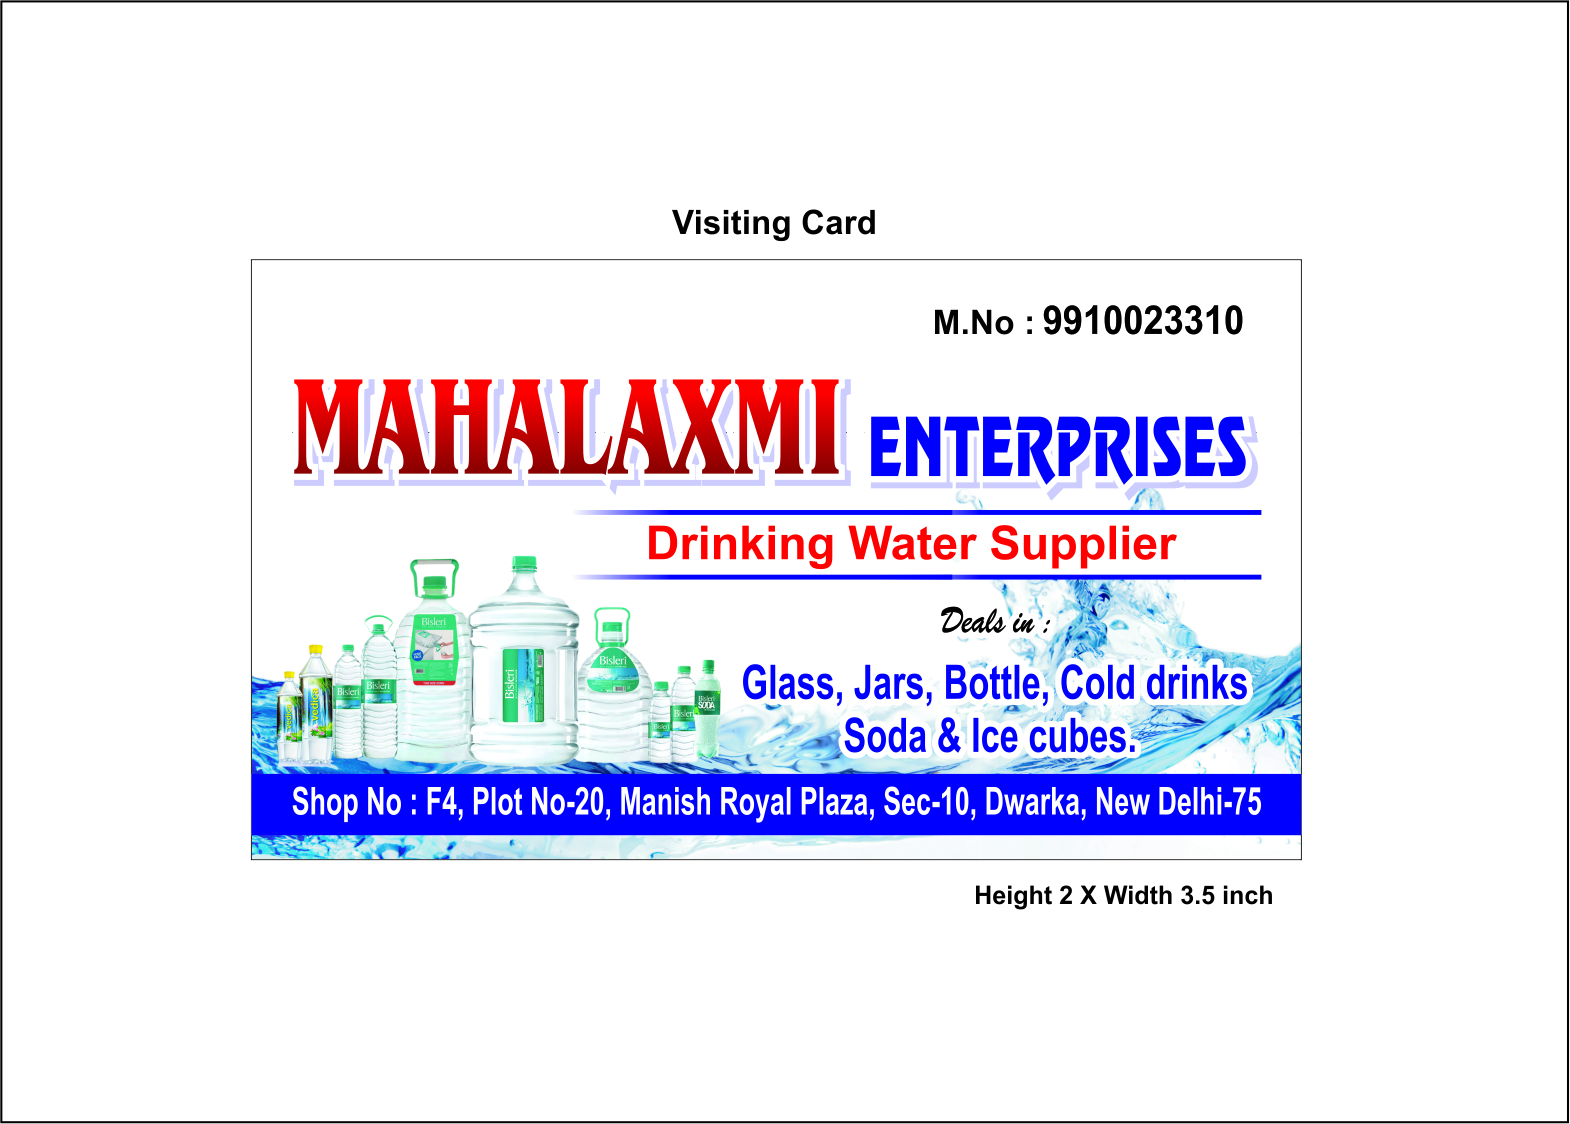 Coreldraw visiting card - Visiting Card In Corel Draw